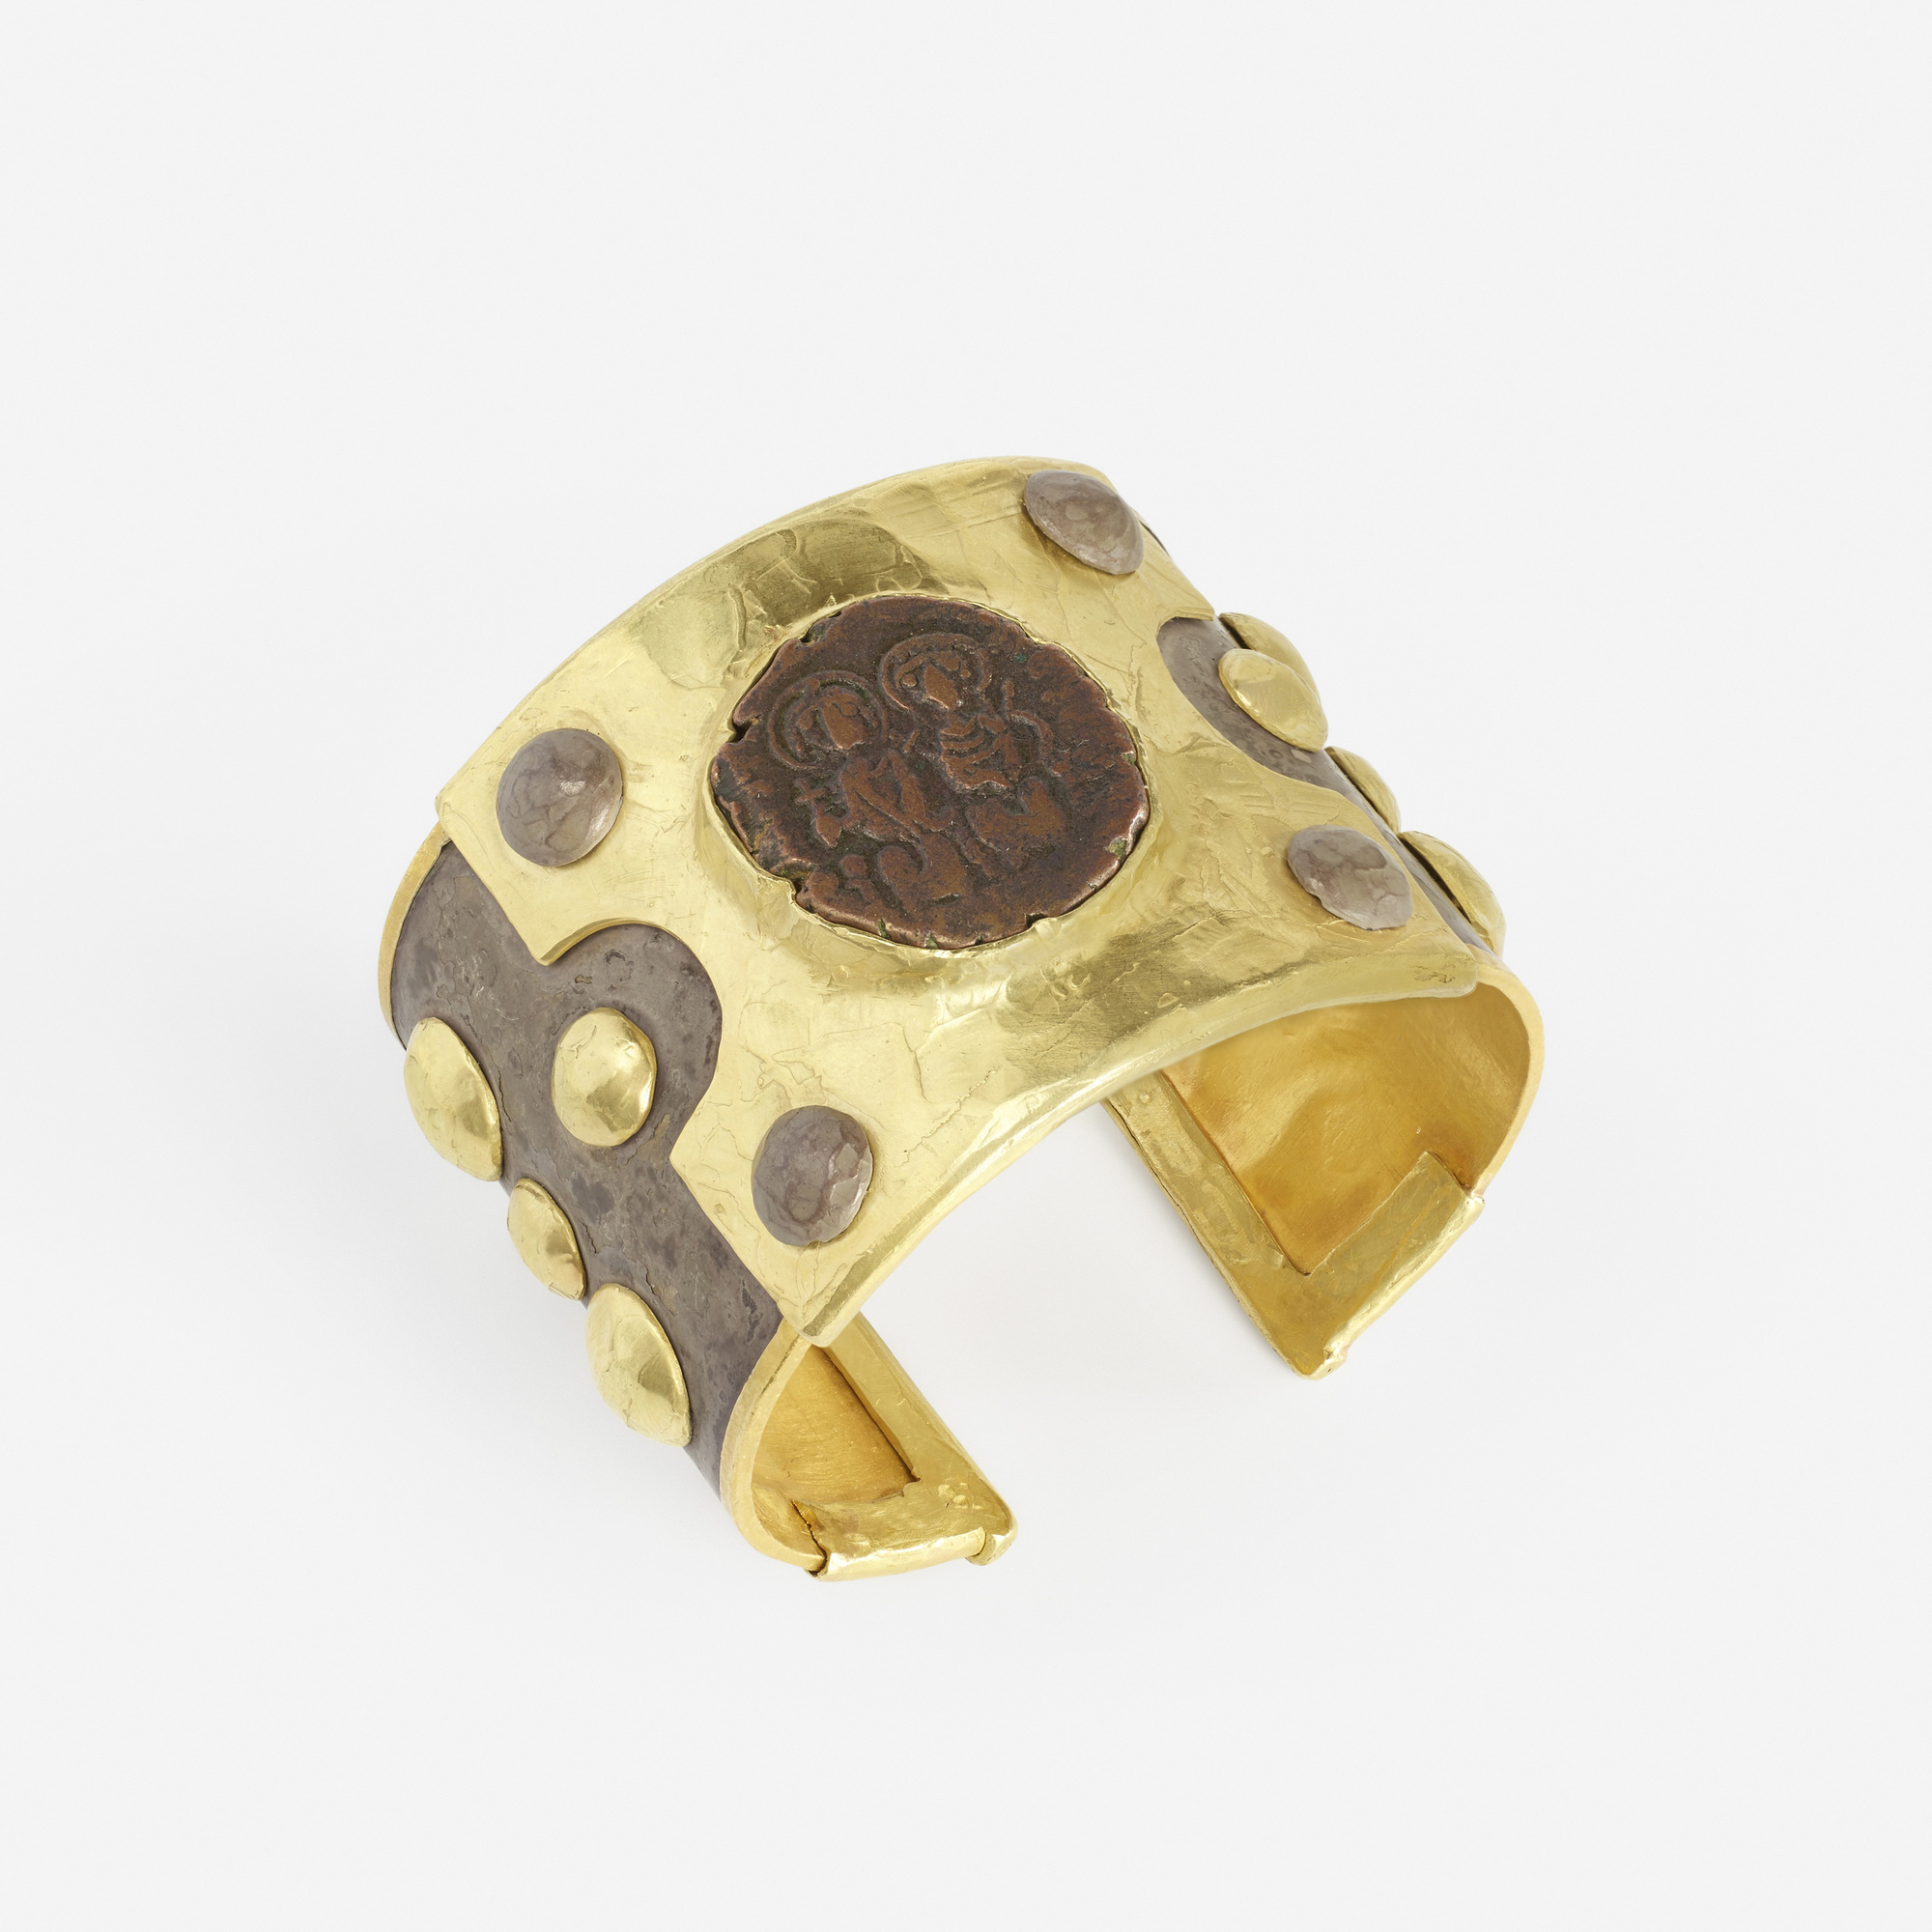 140:  / A gold and silver Byzantine coin cuff (2 of 2)